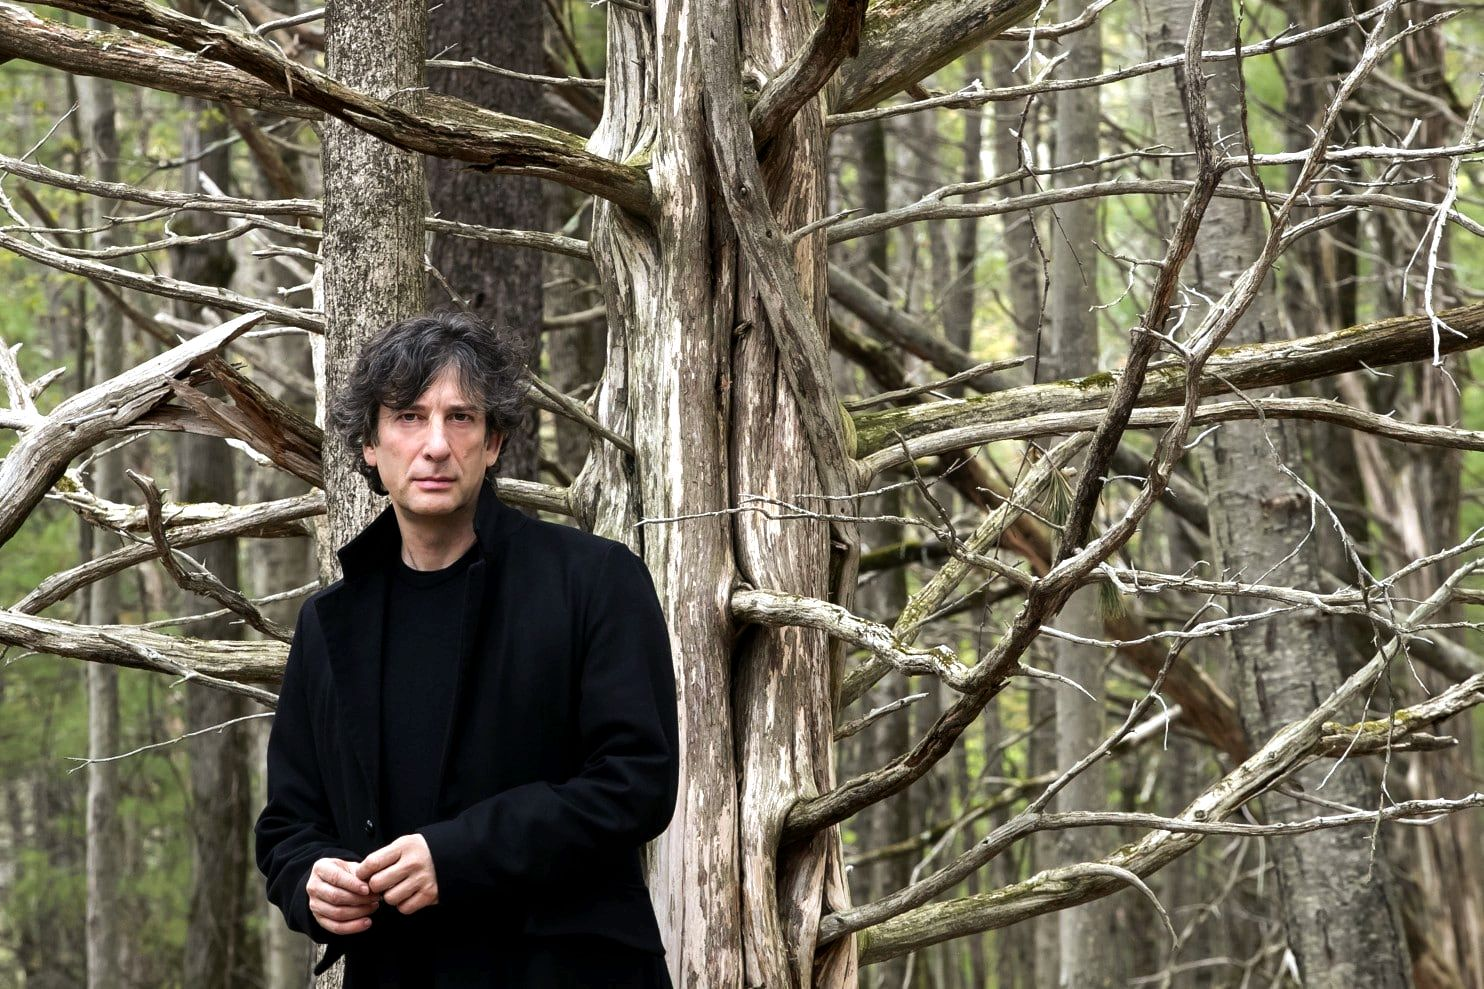 Neil gaiman's suspenseful and surprising 'norse mythology' - the washington publish this description of the magic